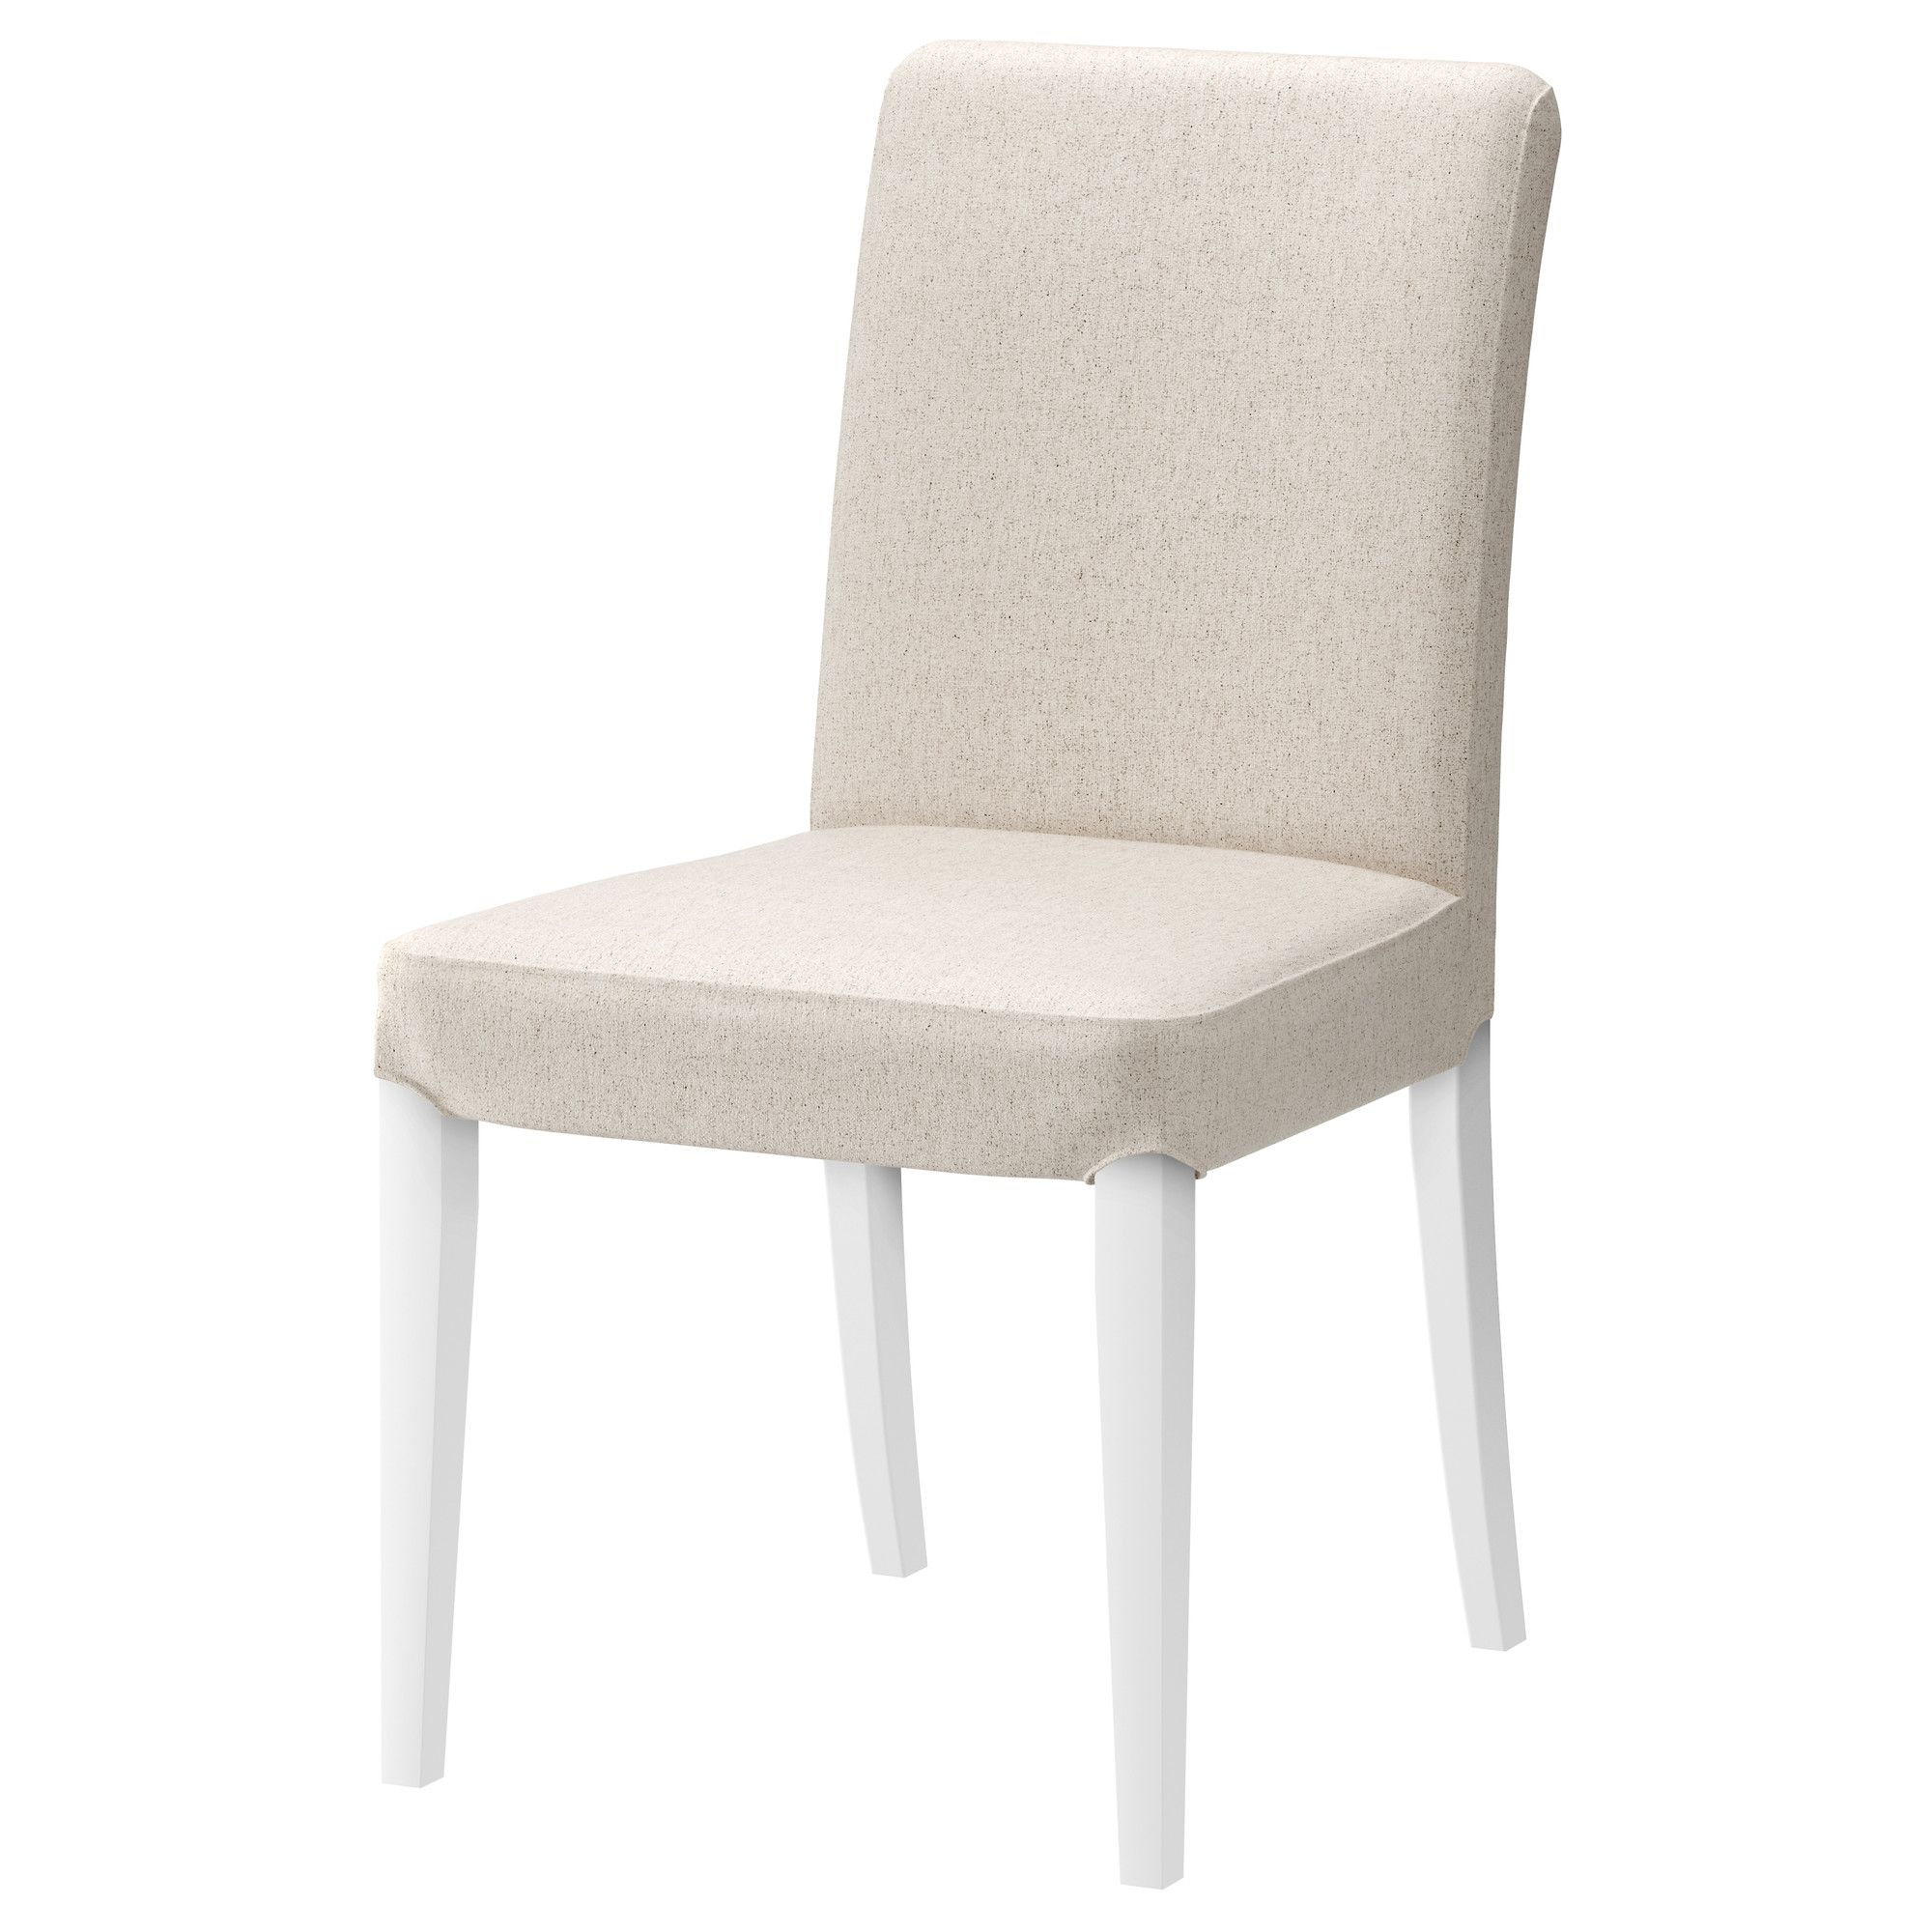 HENRIKSDAL Chair white, Linneryd natural Ikea dining